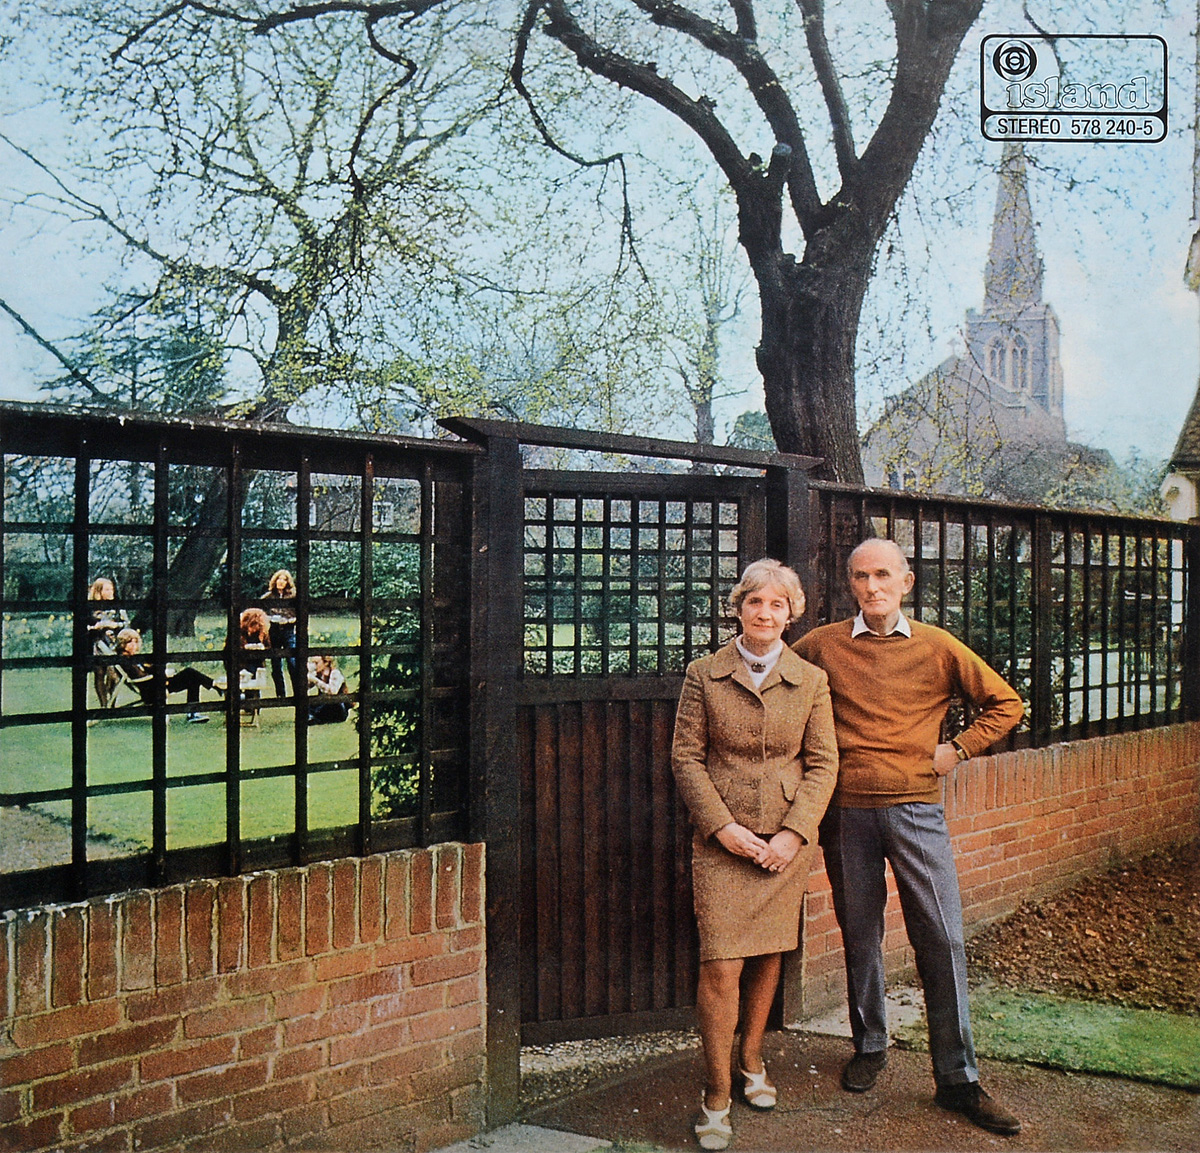 Fairport Convention Fairport Convention. Unhalfbricking (LP) dragworld convention uk weekend